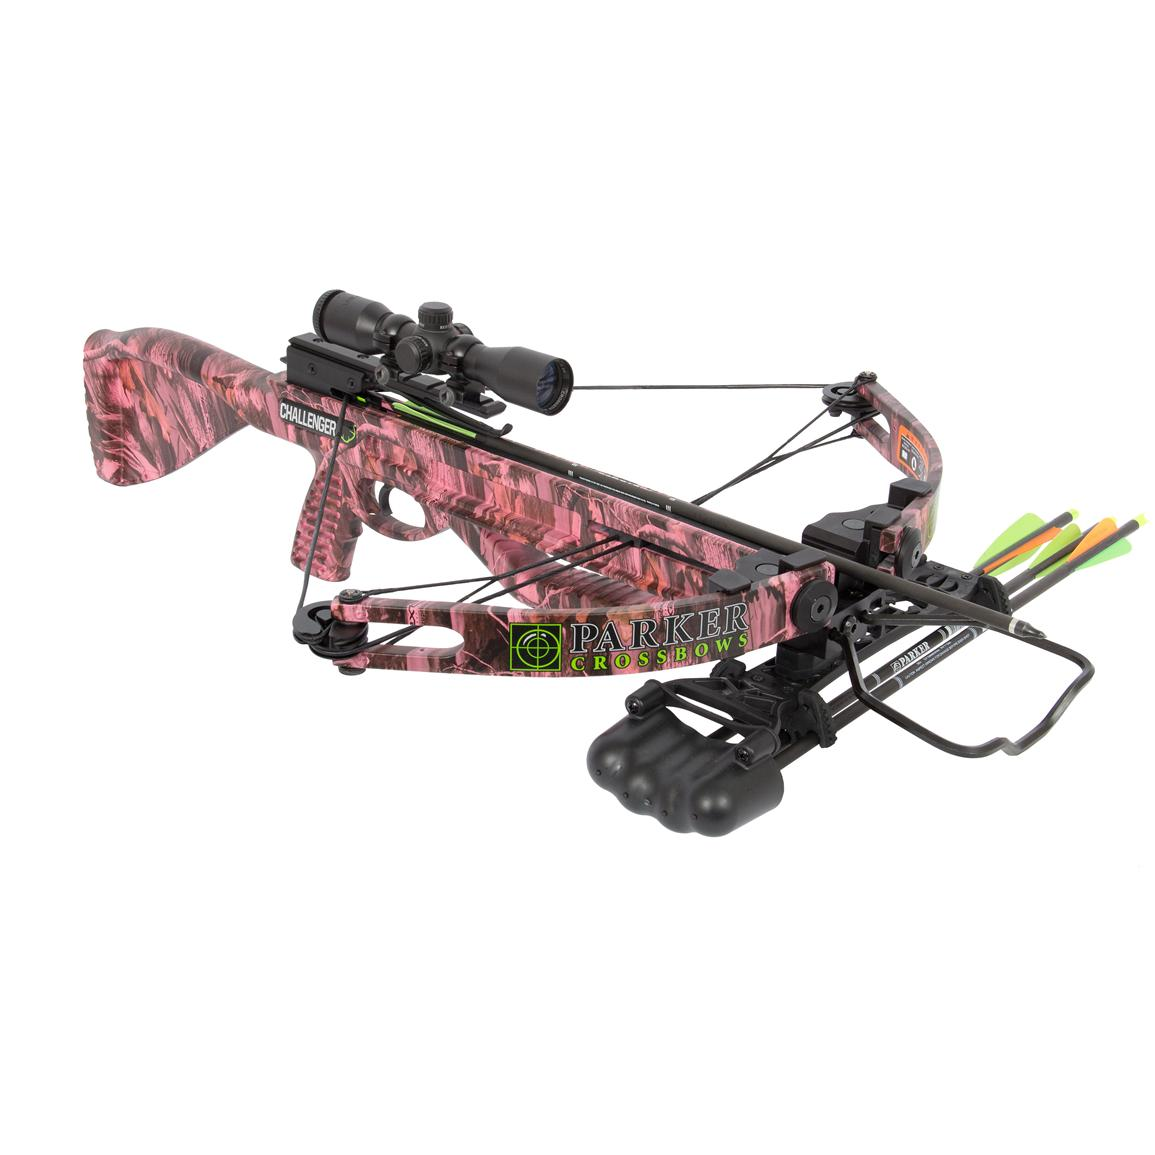 Parker® Pink Challenger Small Frame Crossbow with 3X Illuminated Scope Package